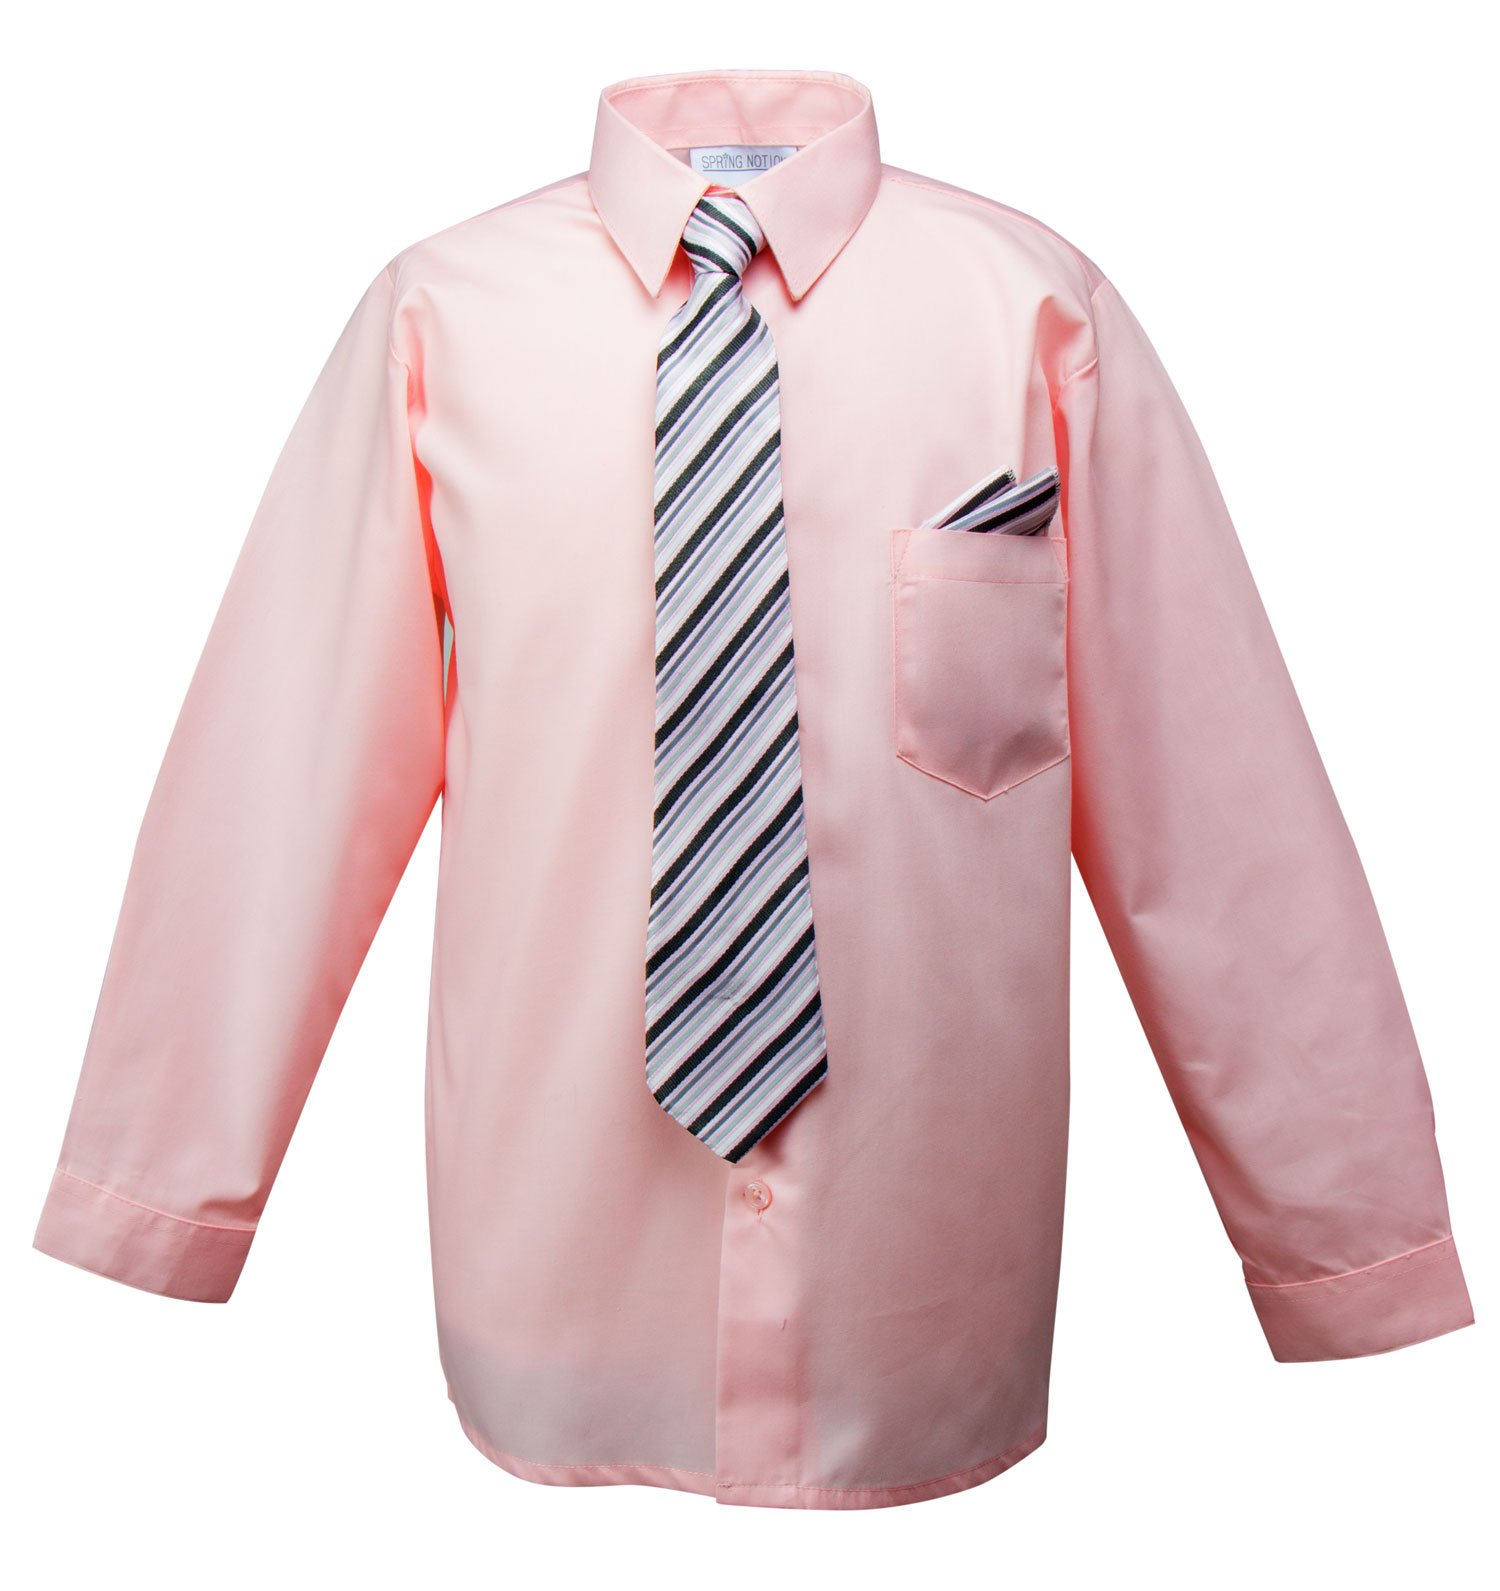 Spring Notion Boys Dress Shirt with Tie and Handkerchief Set 5 Pink